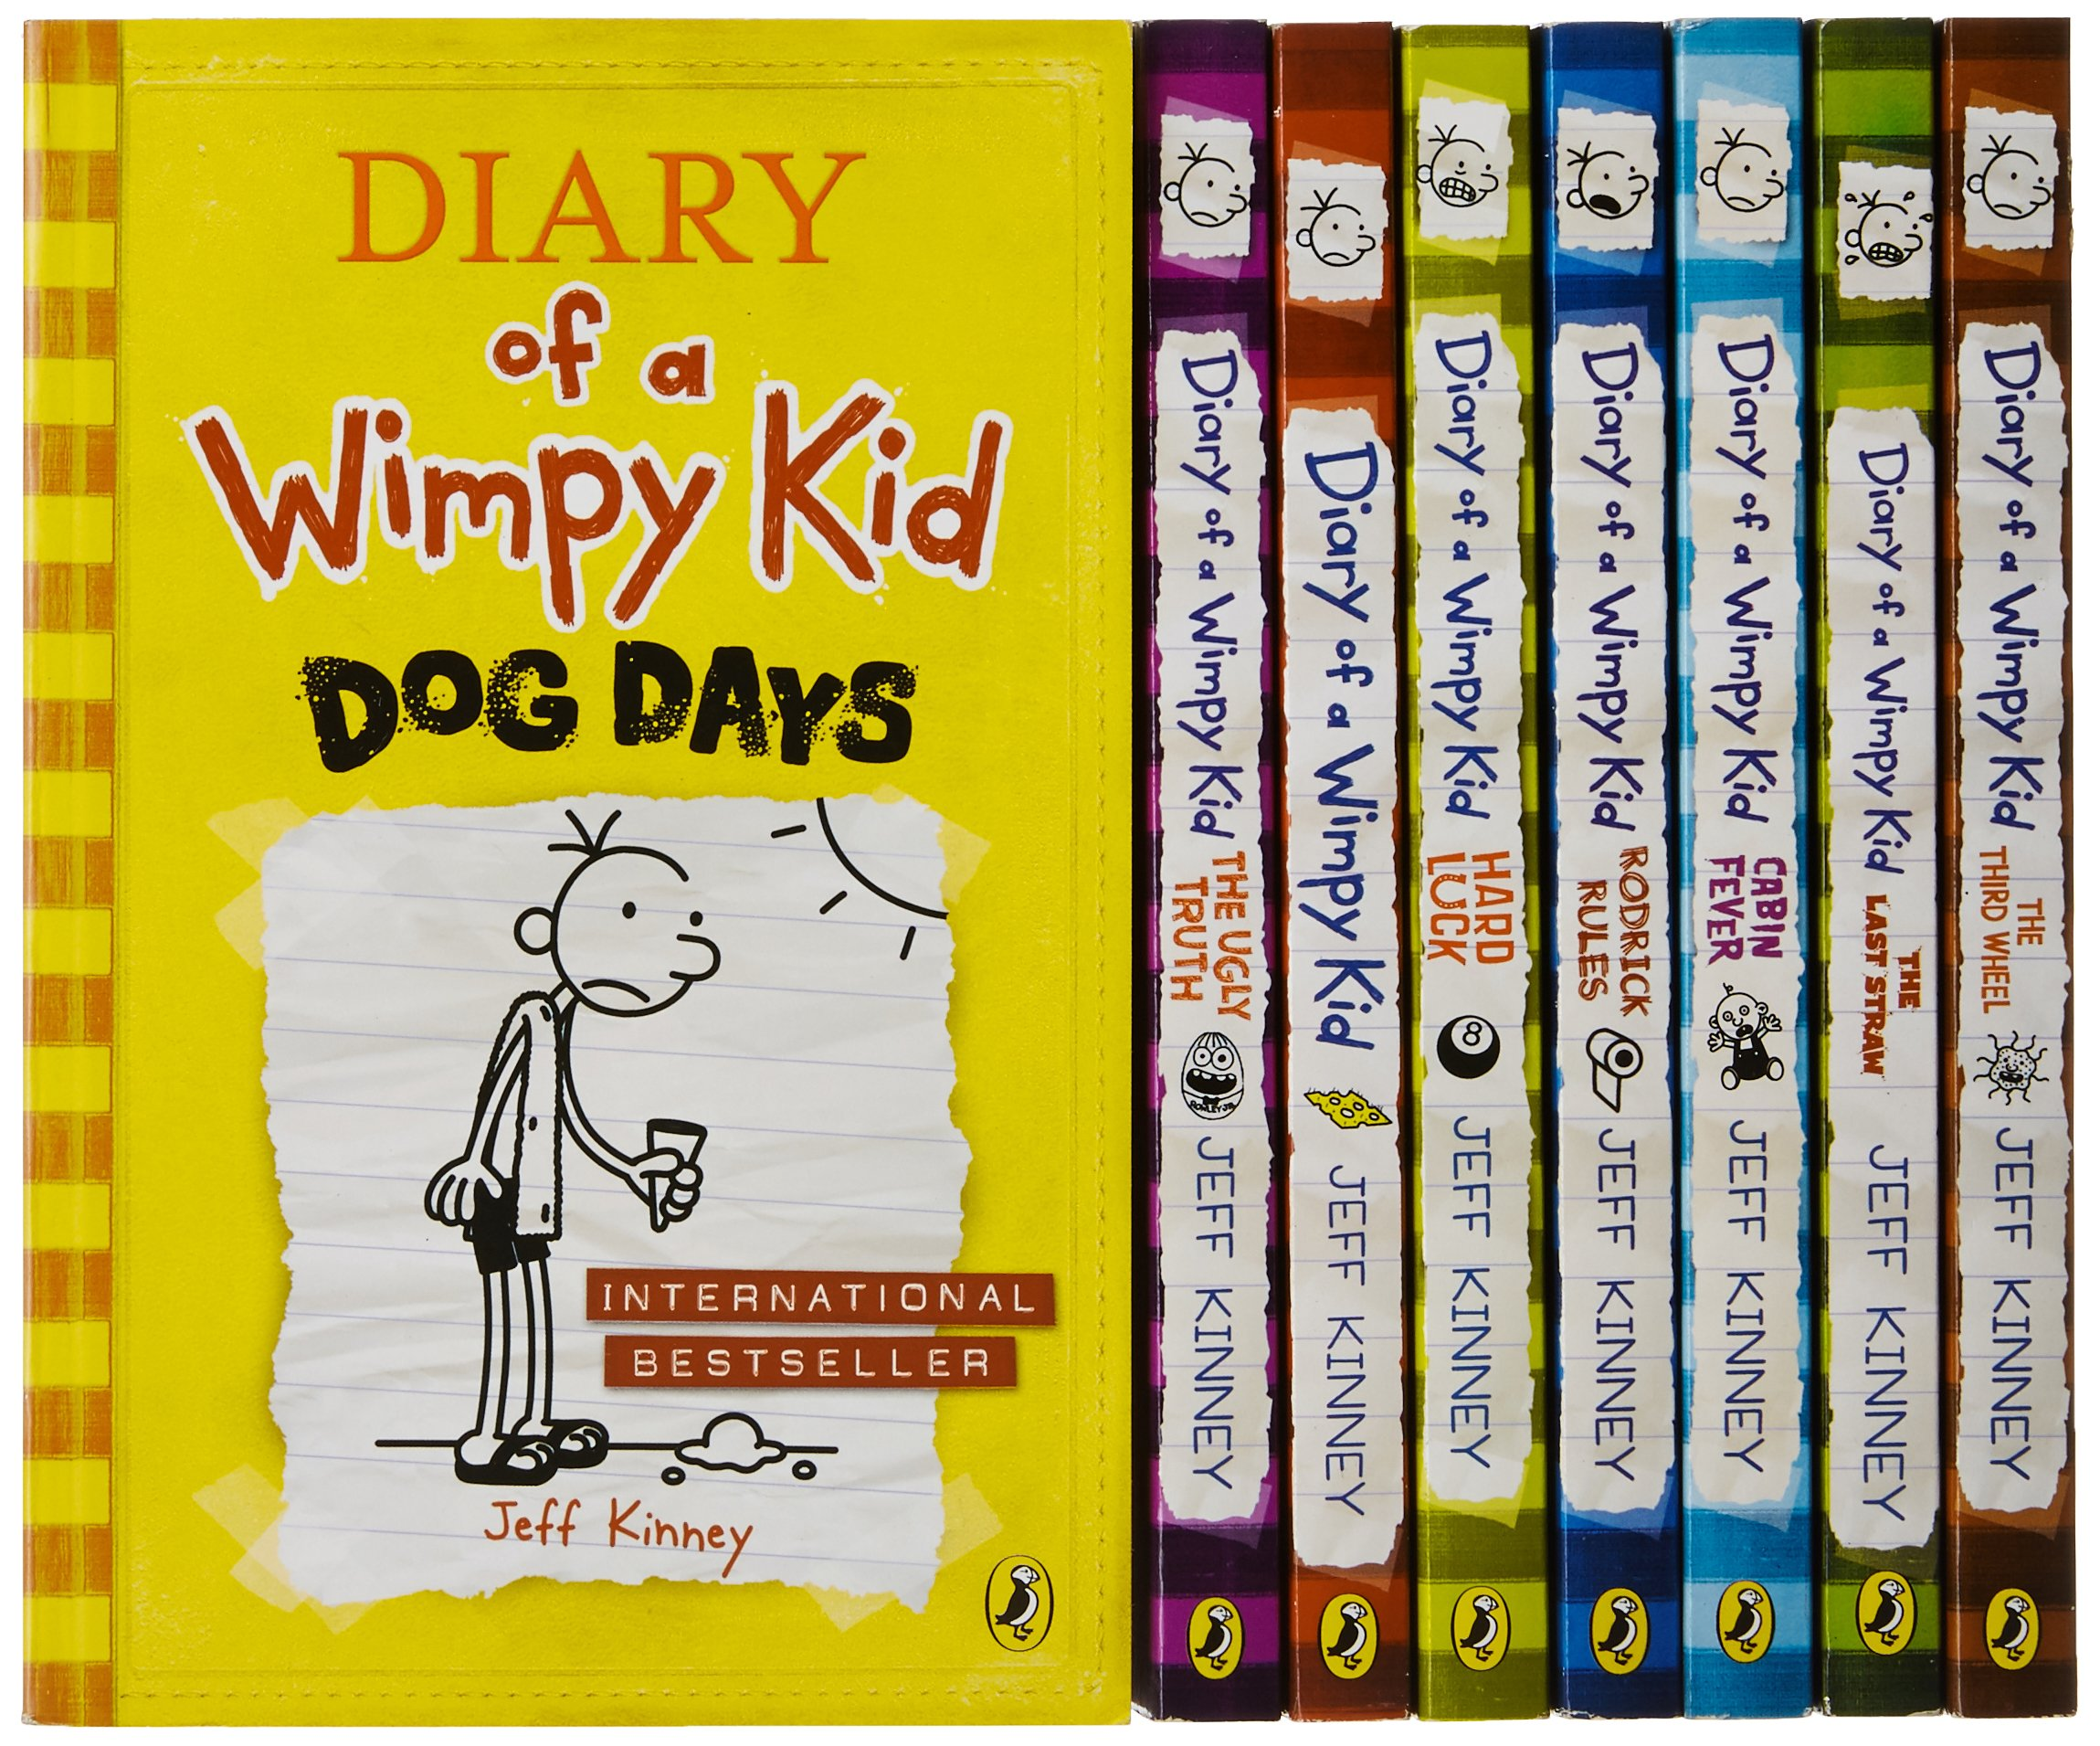 Diary of a wimpy kid box of books 1 8 the do it yourself book diary of a wimpy kid box of books 1 8 the do it yourself book jeff kinney amazon libros solutioingenieria Gallery